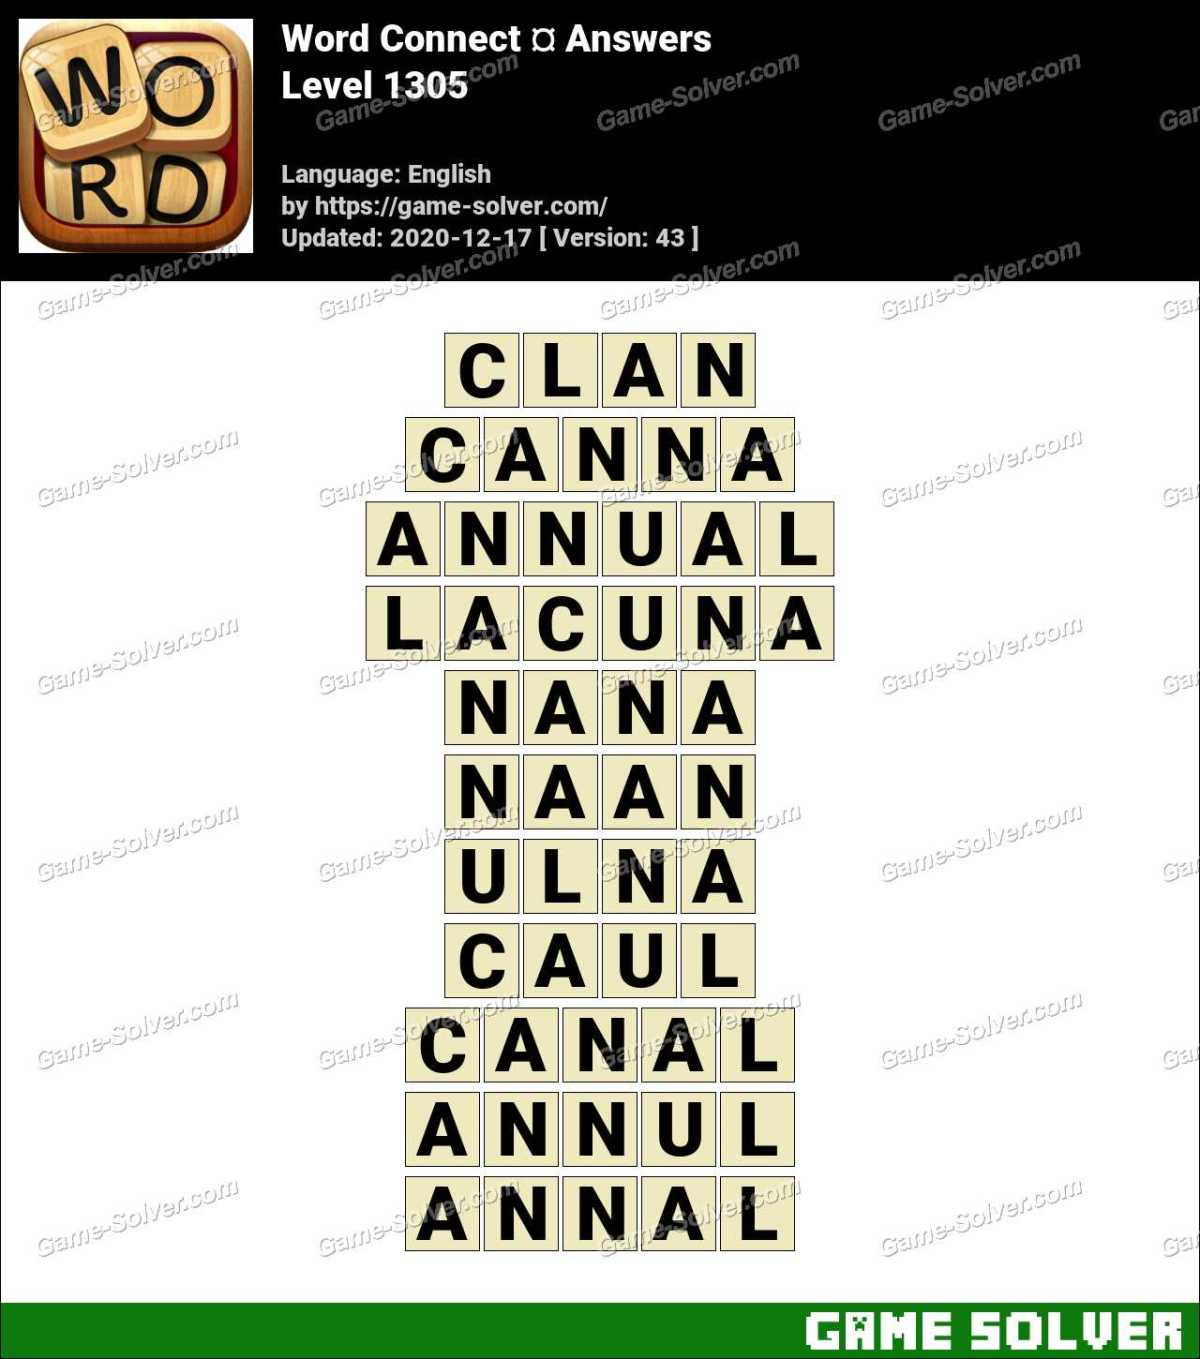 Word Connect Level 1305 Answers